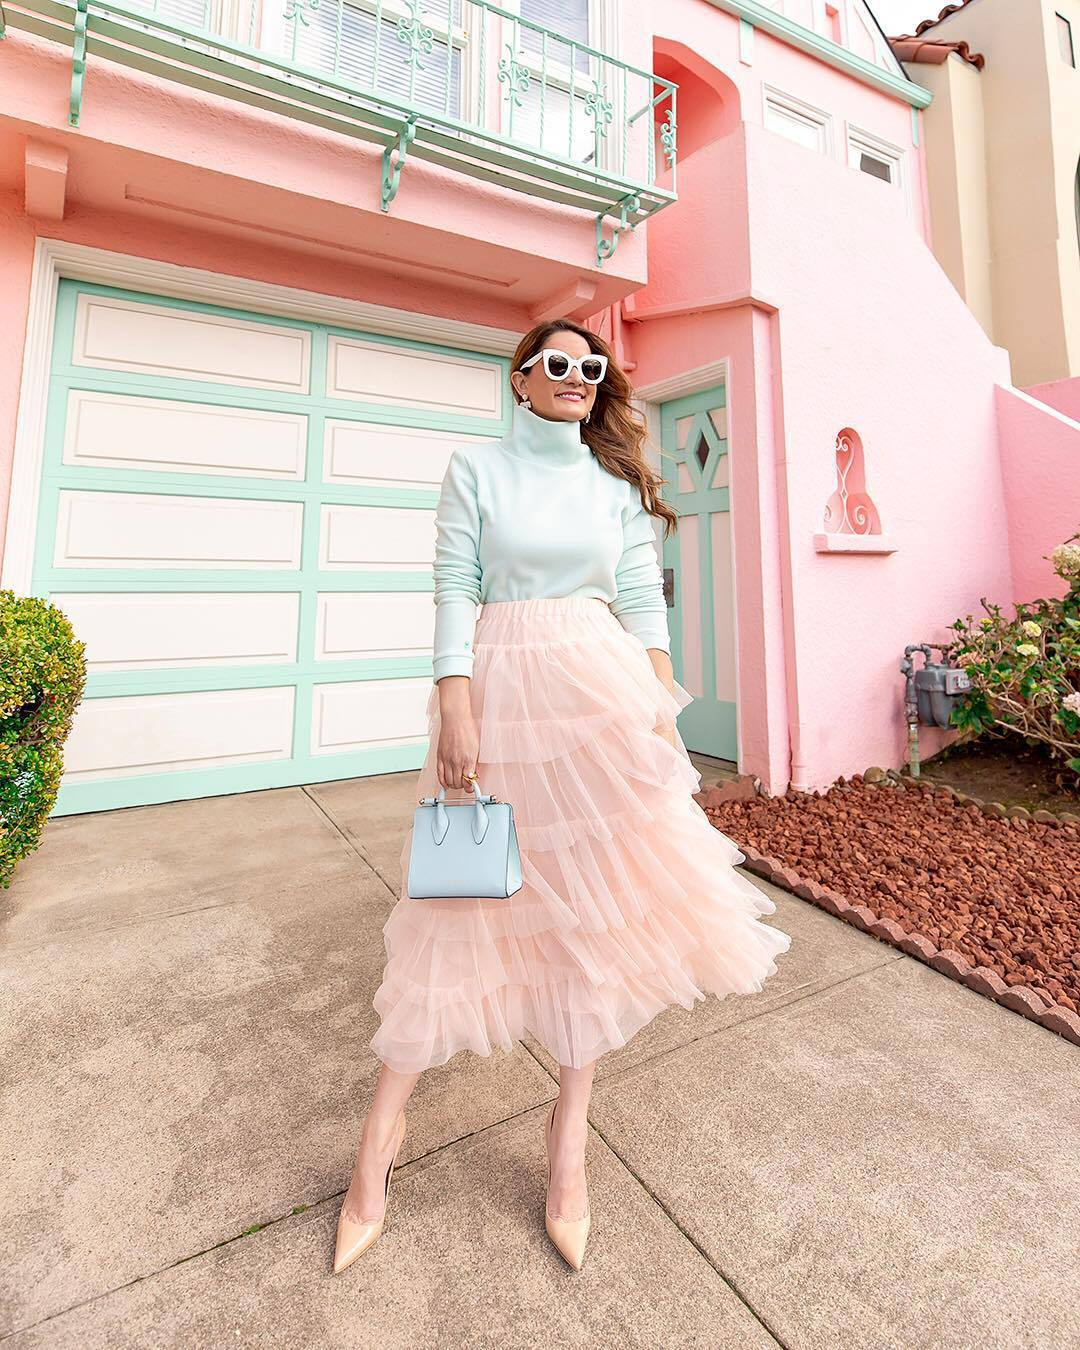 skirt tulle skirt midi skirt pumps white bag handbag white turtleneck top